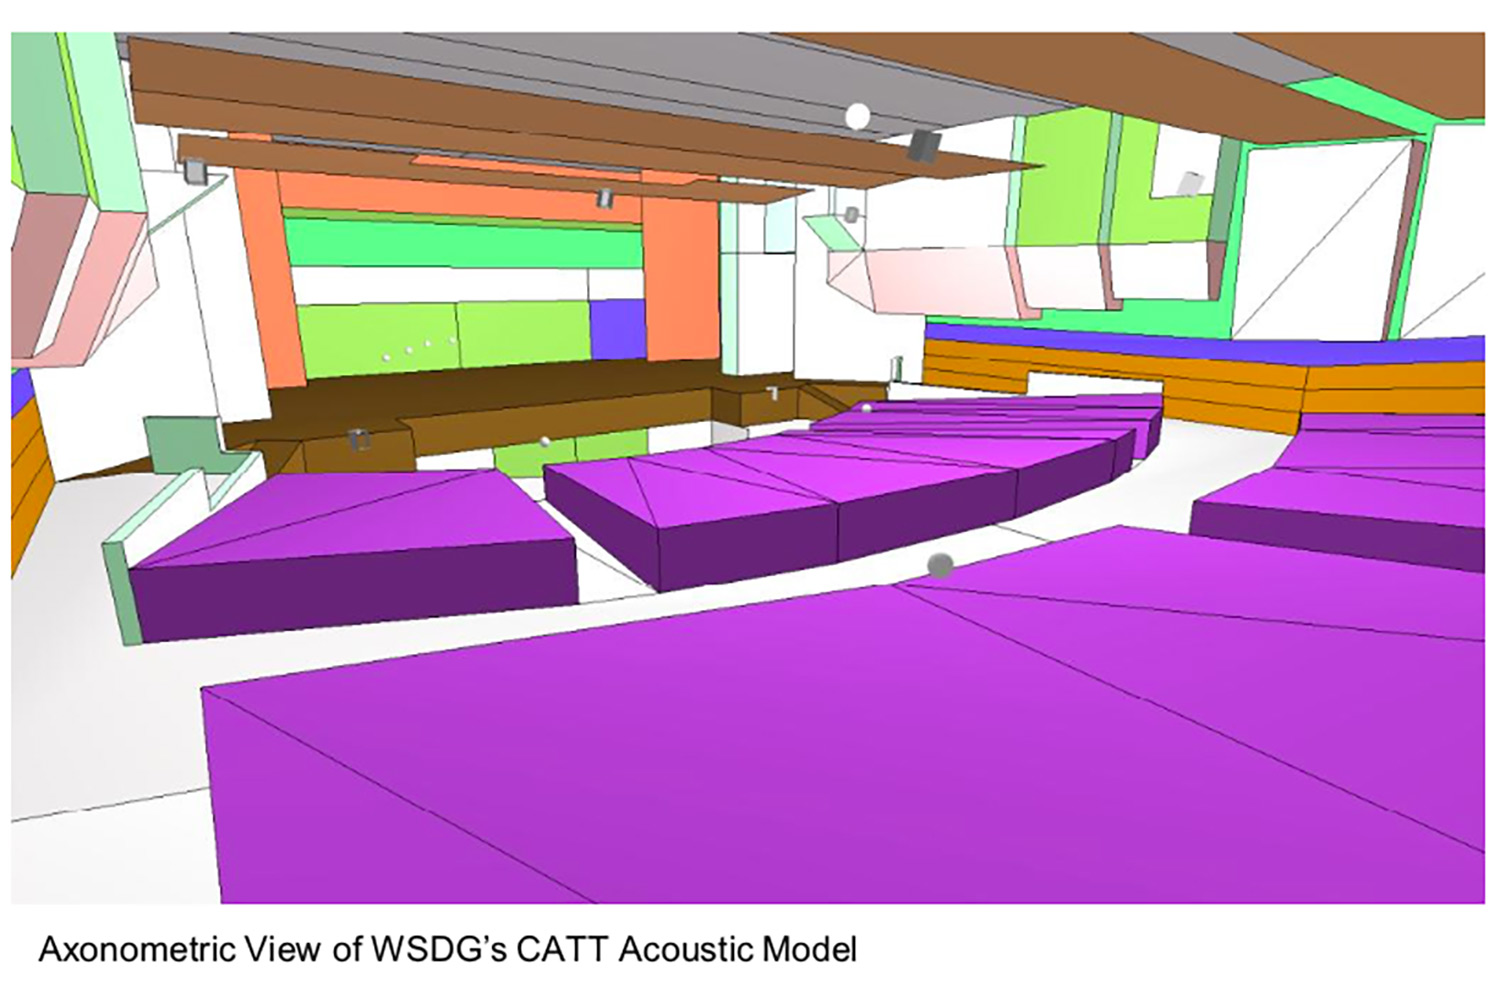 Goshen High School new auditorium in Goshen, NY. WSDG was retained to acoustically measure the space and collaborate on the redesign with LAN Associates to optimize the space for these needs while still retaining the aesthetic goals of the redesign. Axonometric View.